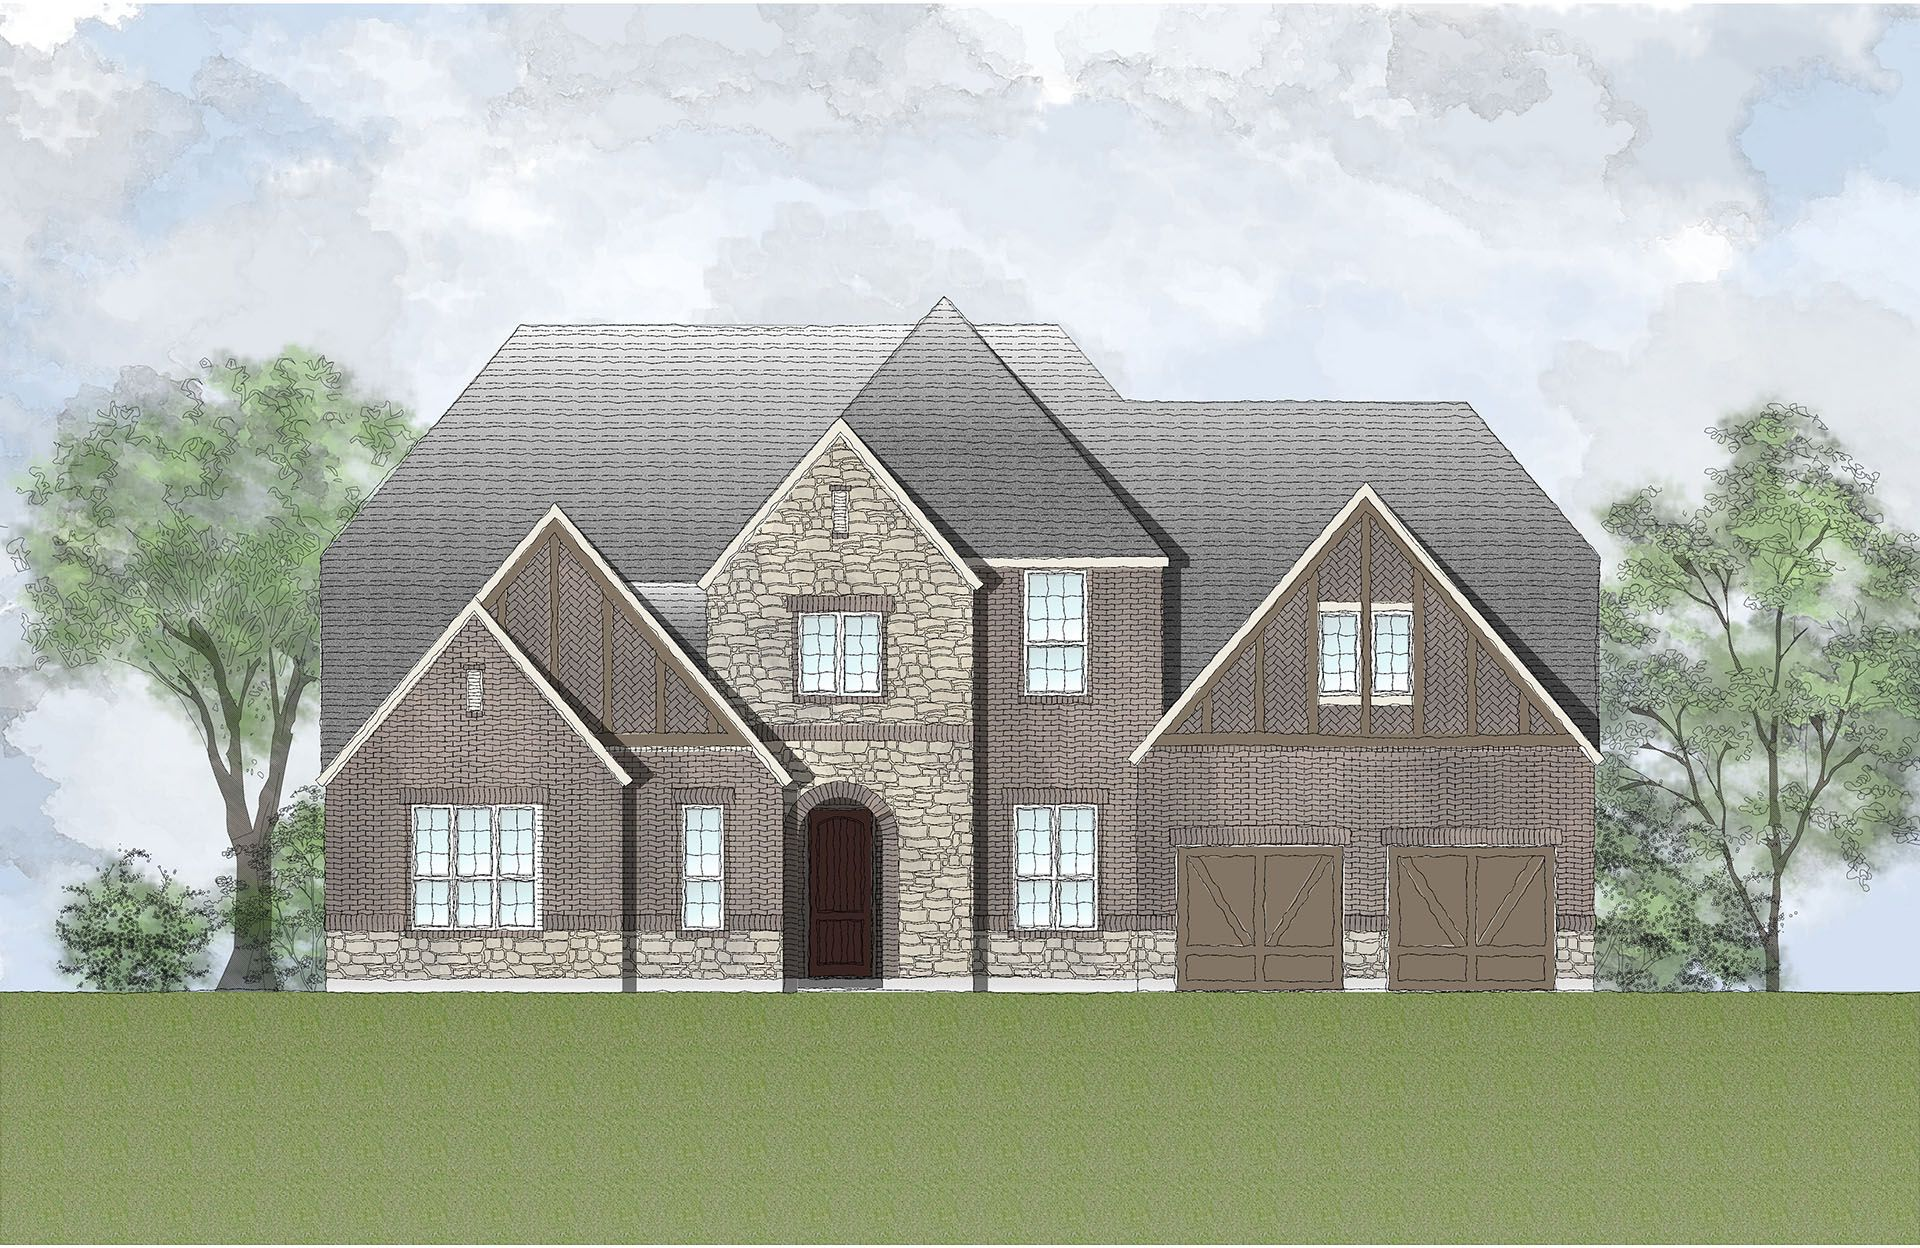 Single Family for Active at Harper's Preserve - Grantley Model Home Coming Soon! Conroe, Texas 77385 United States